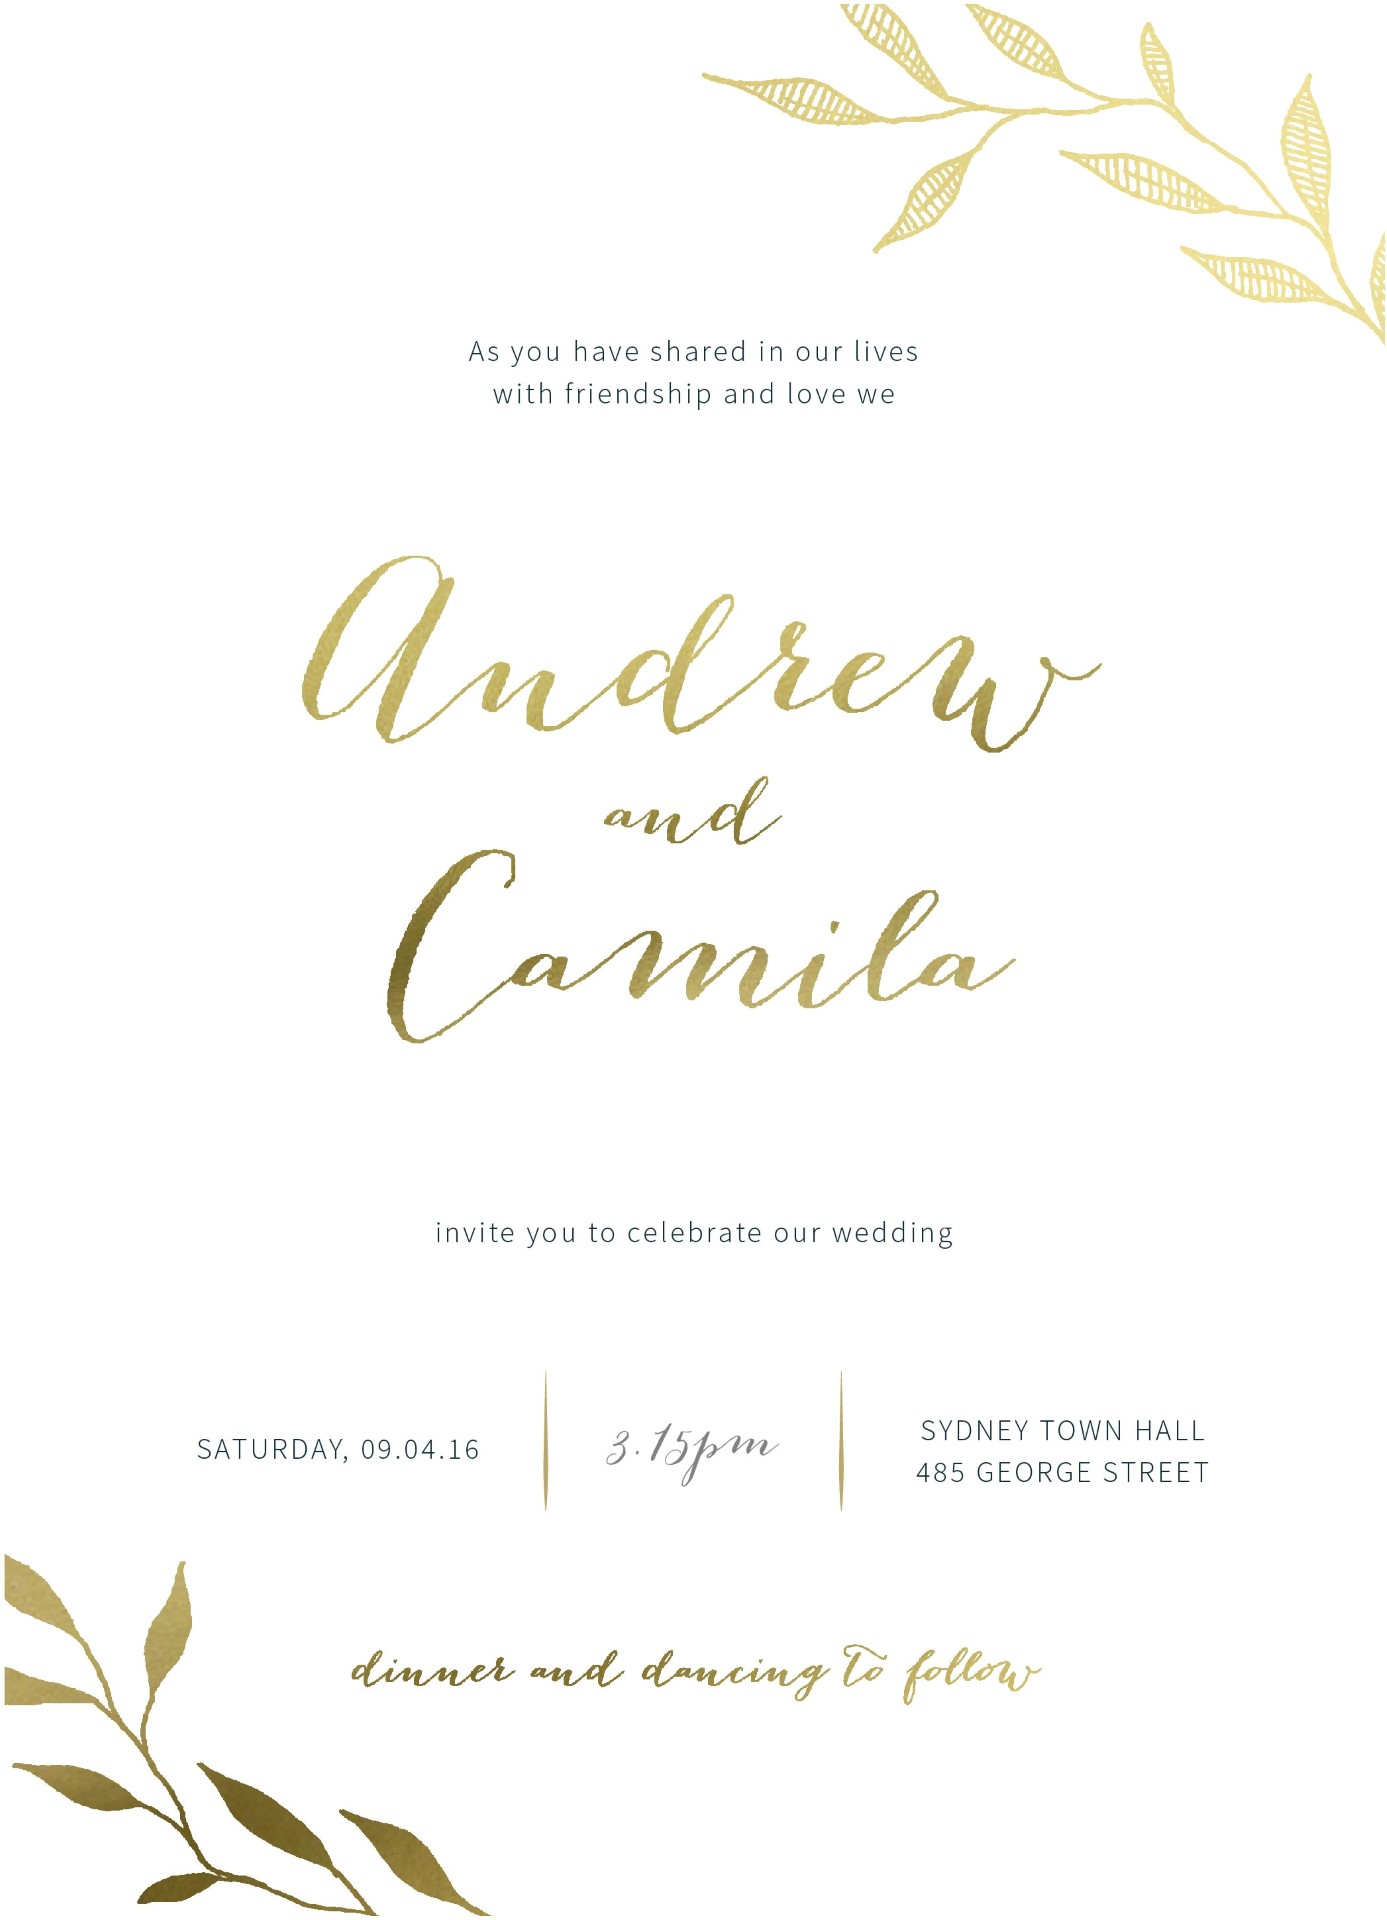 Wedding invitations online designs by australian designers leaves wedding invitations solutioingenieria Image collections